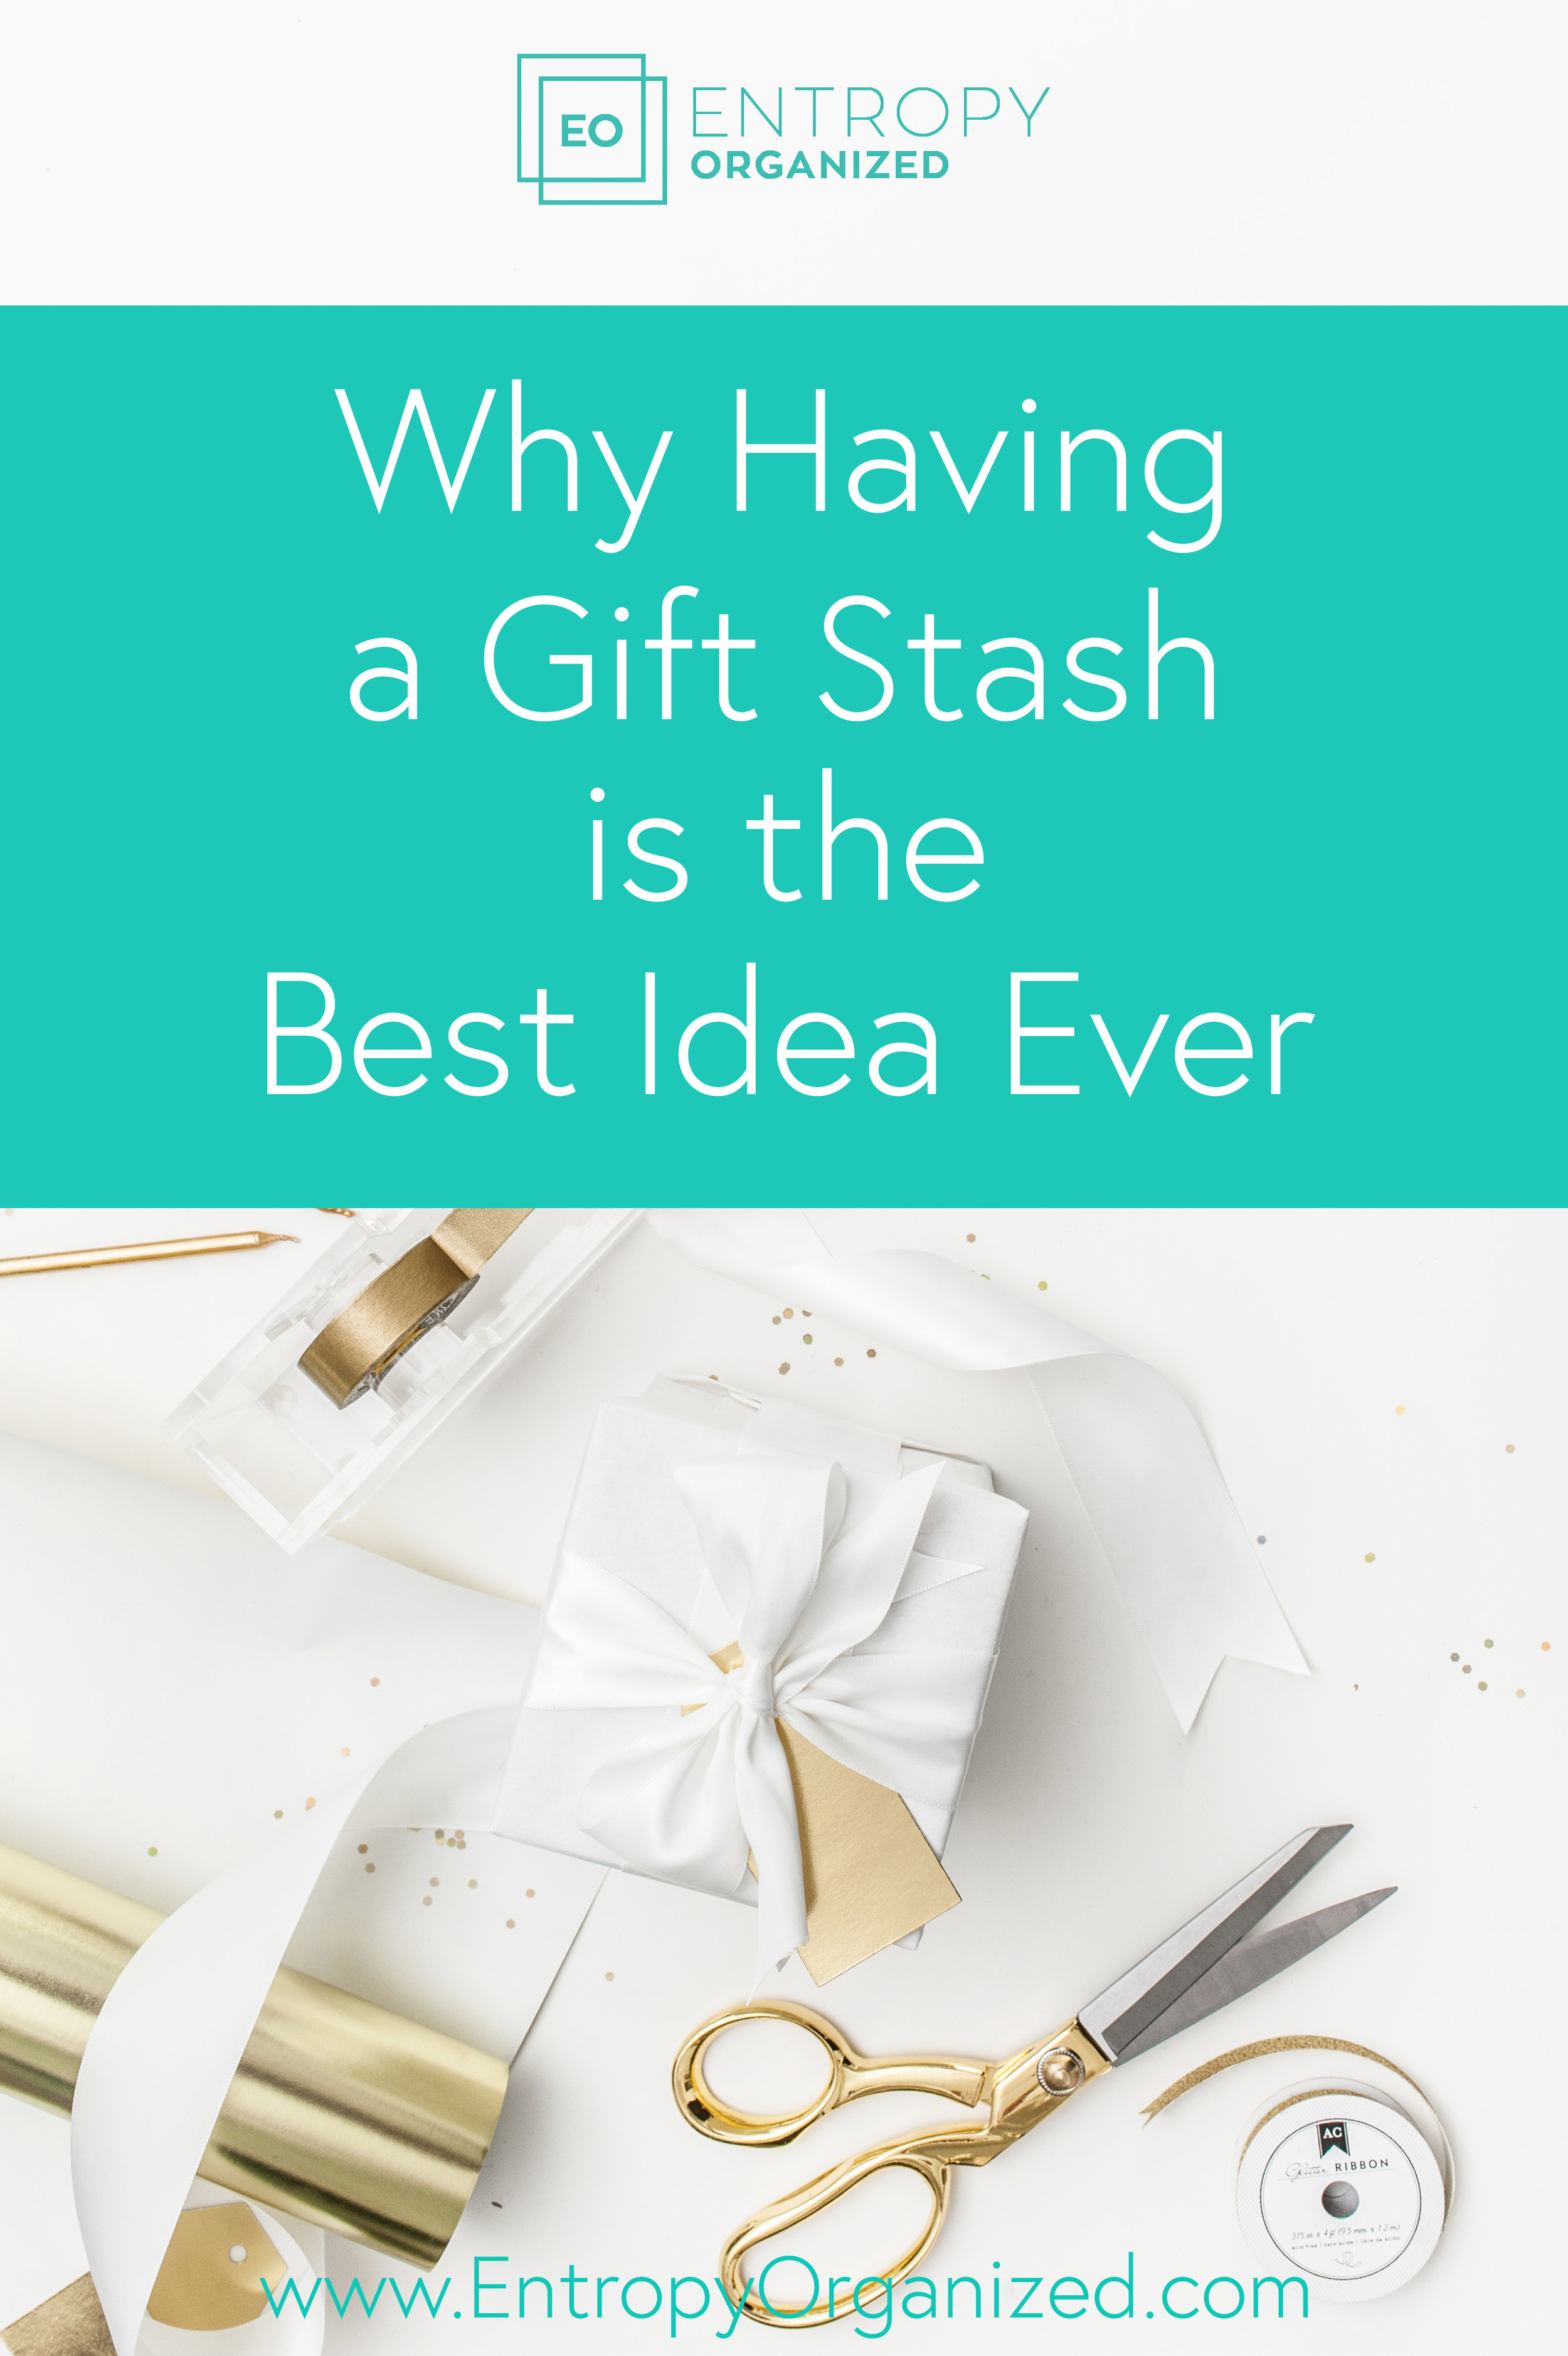 Why Having a Gift Stash is the Best Idea Ever